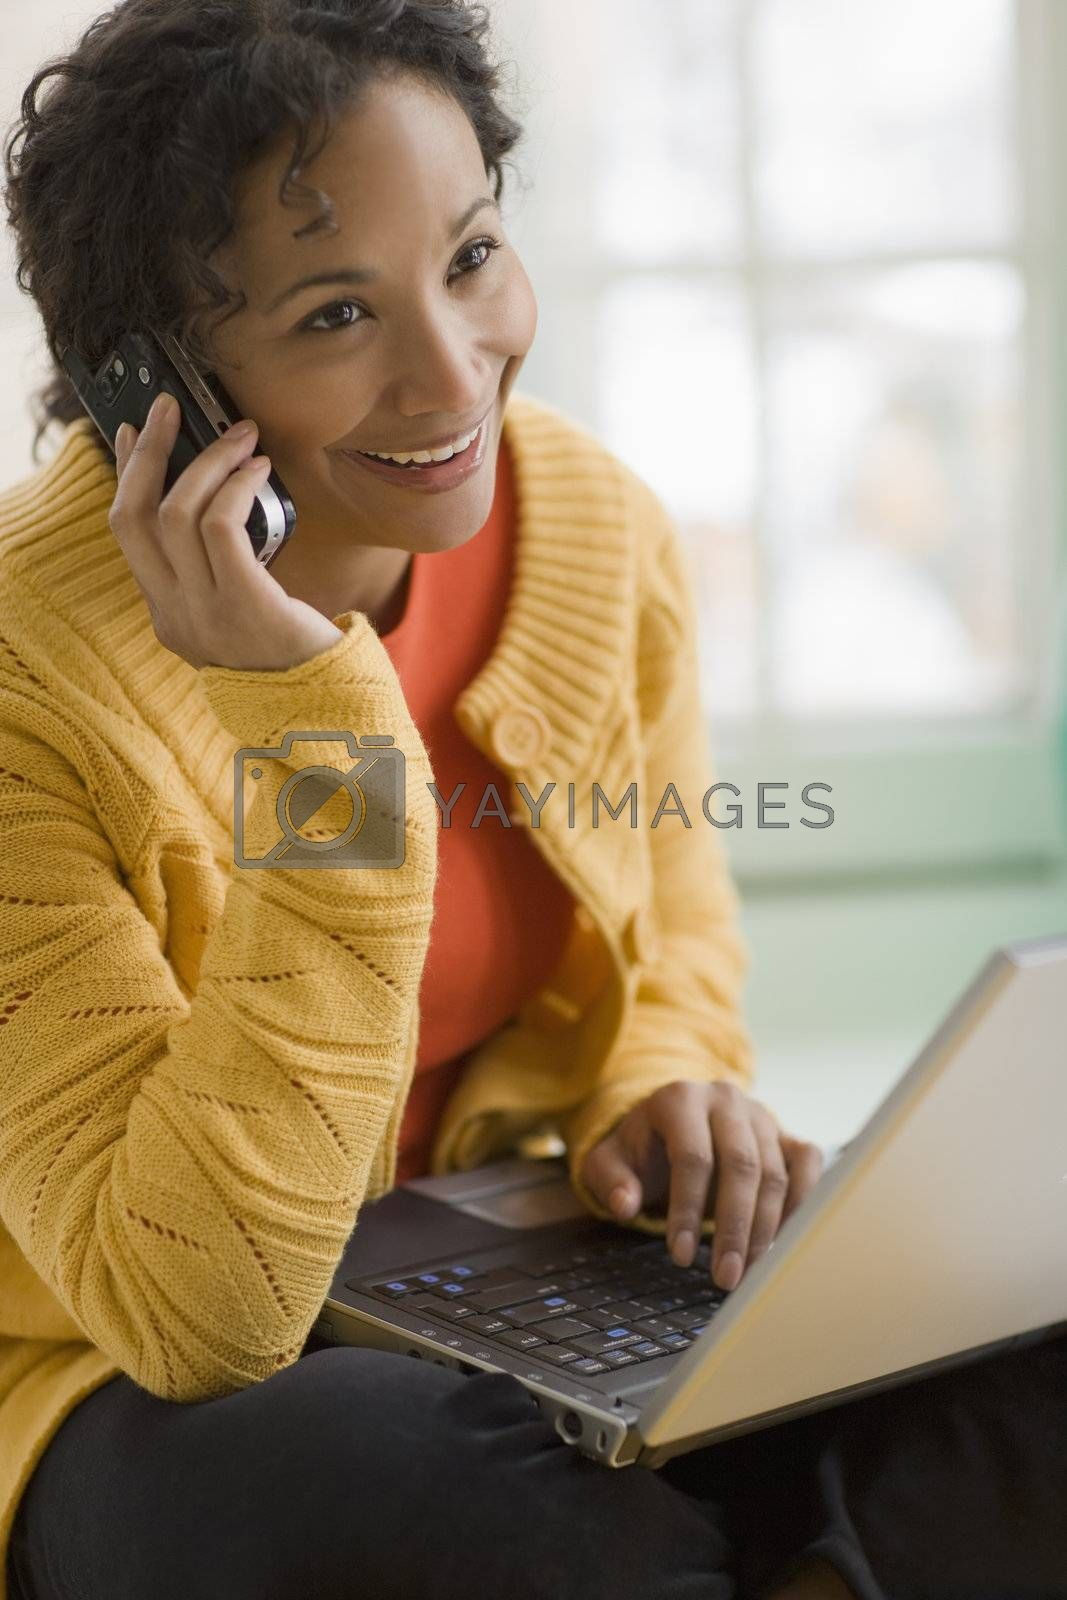 Beautiful young smiling African American woman using cell phone and laptop